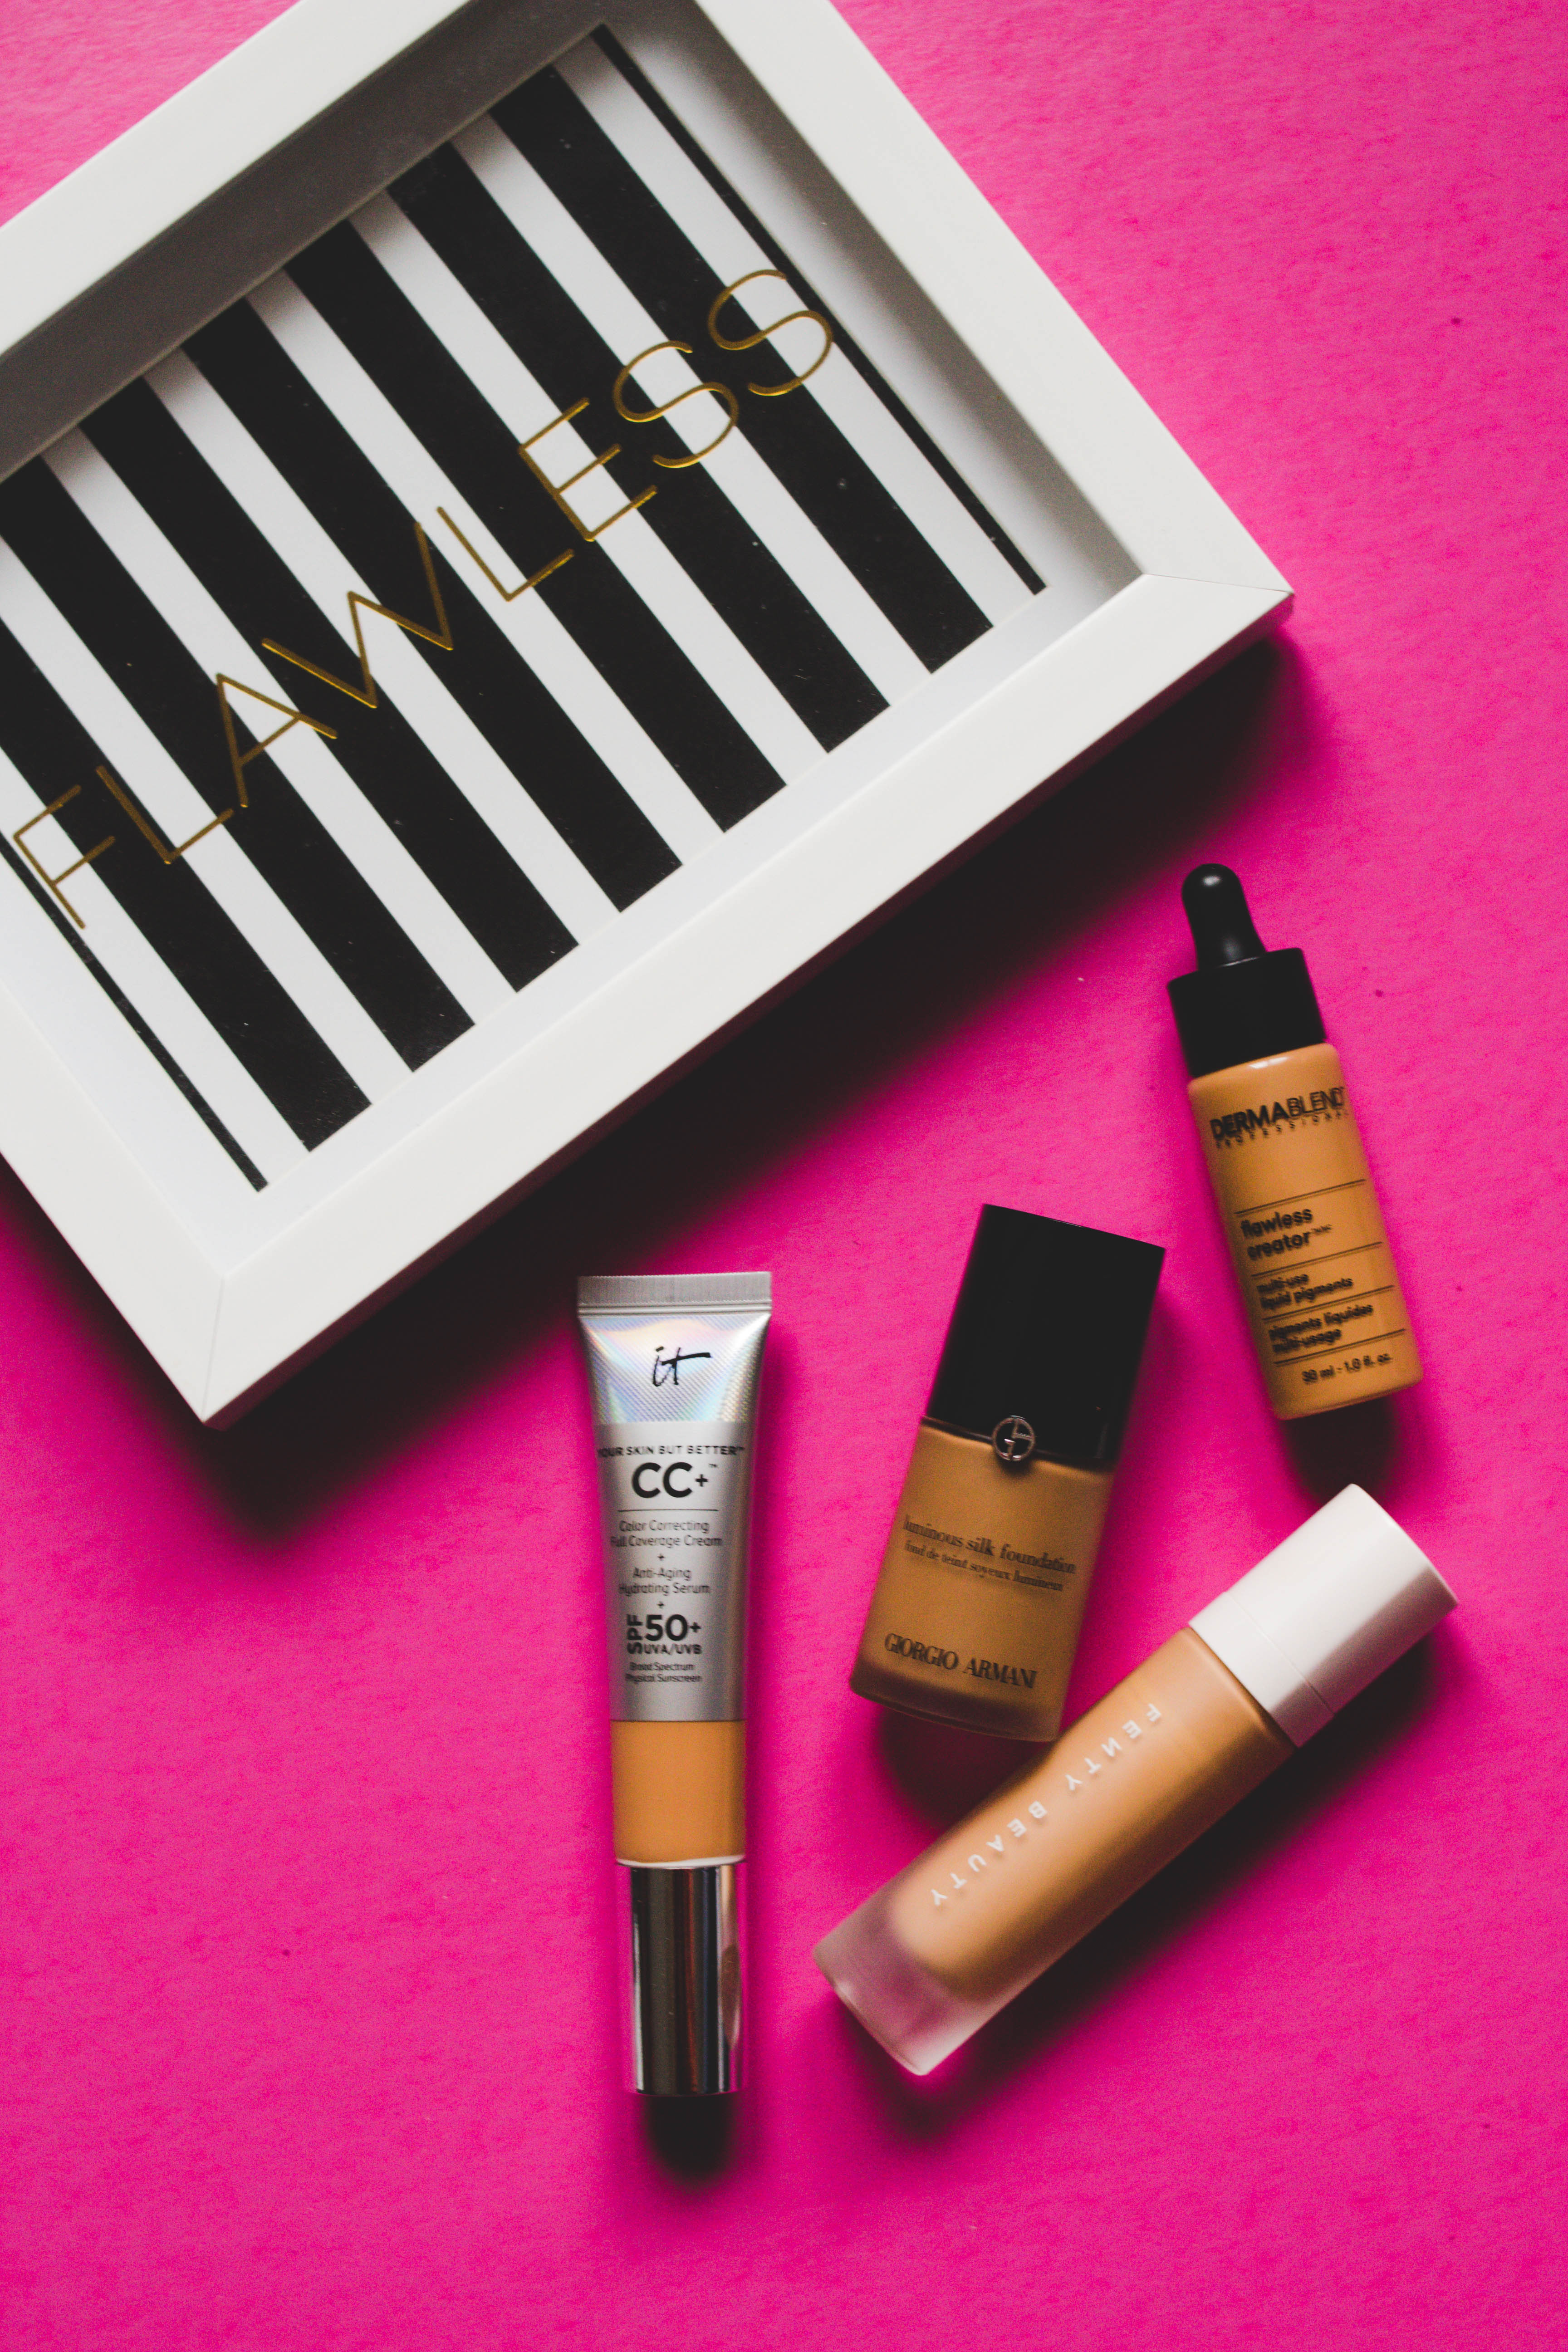 The best beauty products for to get a beat face PLUS reviews of similar products and how they work on oily combination skin from Kentucky blogger, What Nicole Wore. // best foundations for oily skin, armani foundation review, fenty beauty product review, it cosmetics cc+ cream, dermablend foundation drops